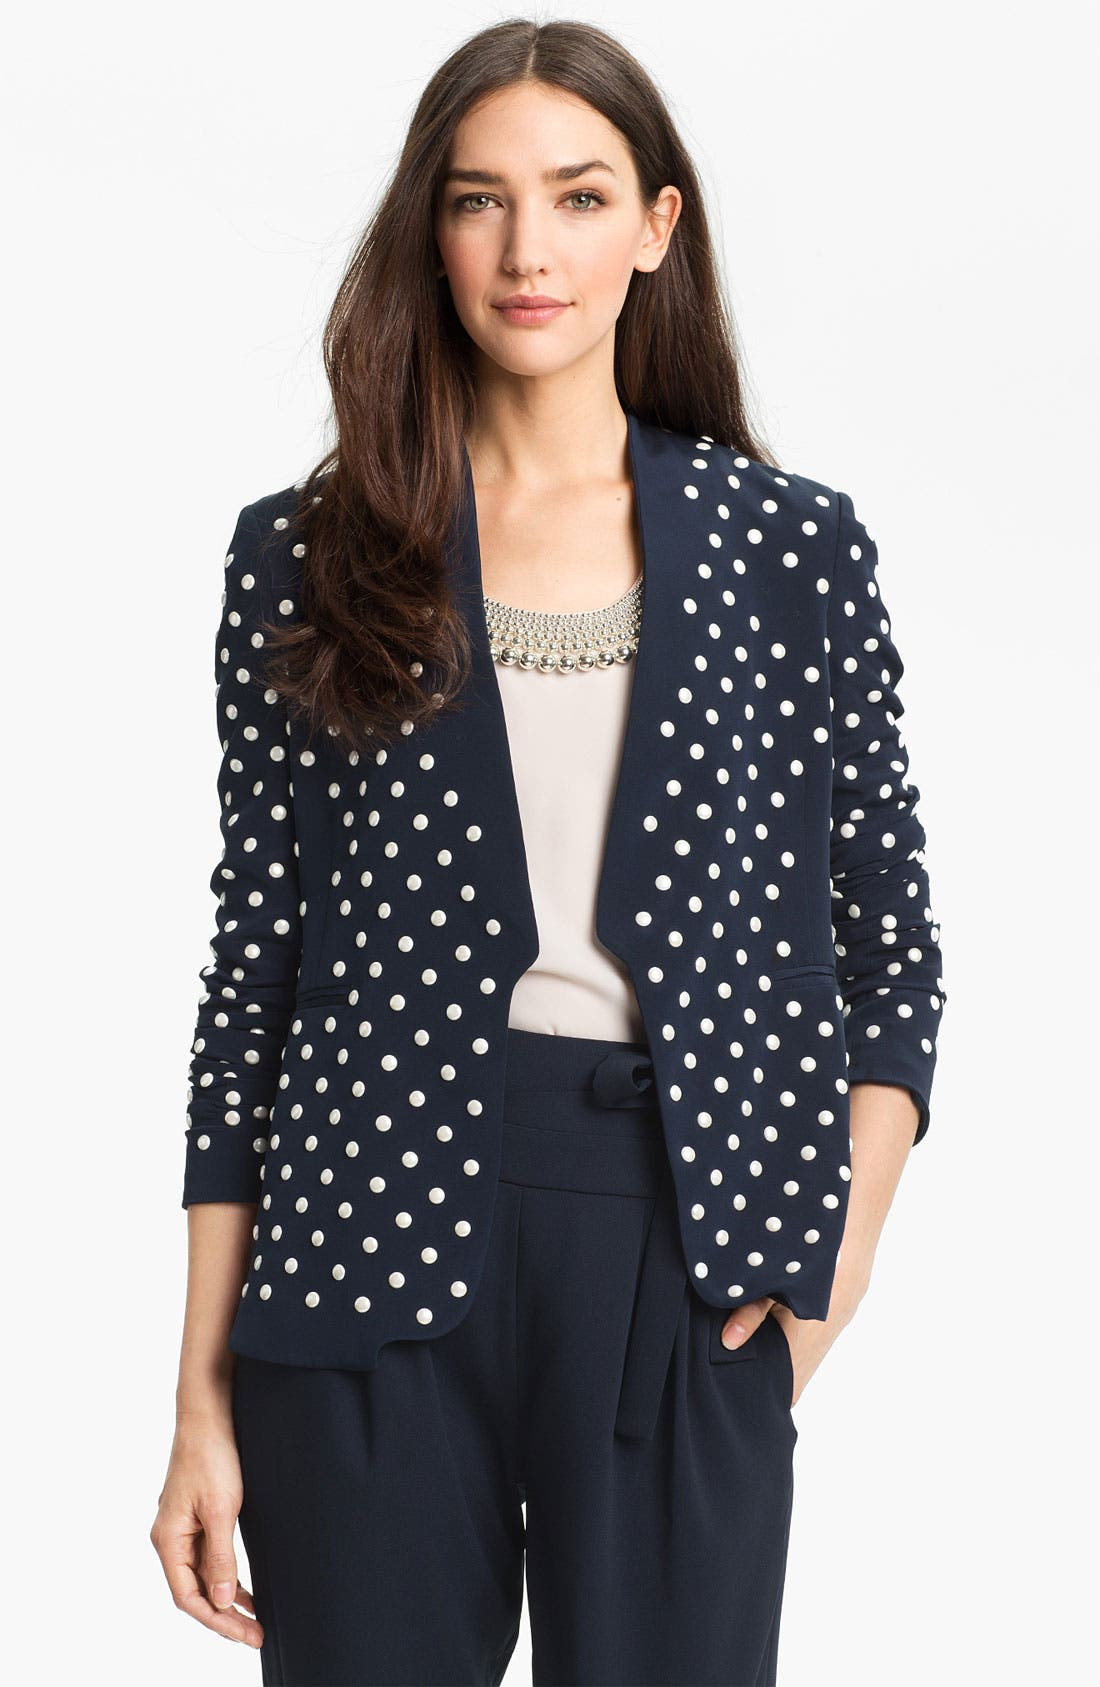 Alternate Image 1 Selected - Diane von Furstenberg 'Paulette' Studded Jacket